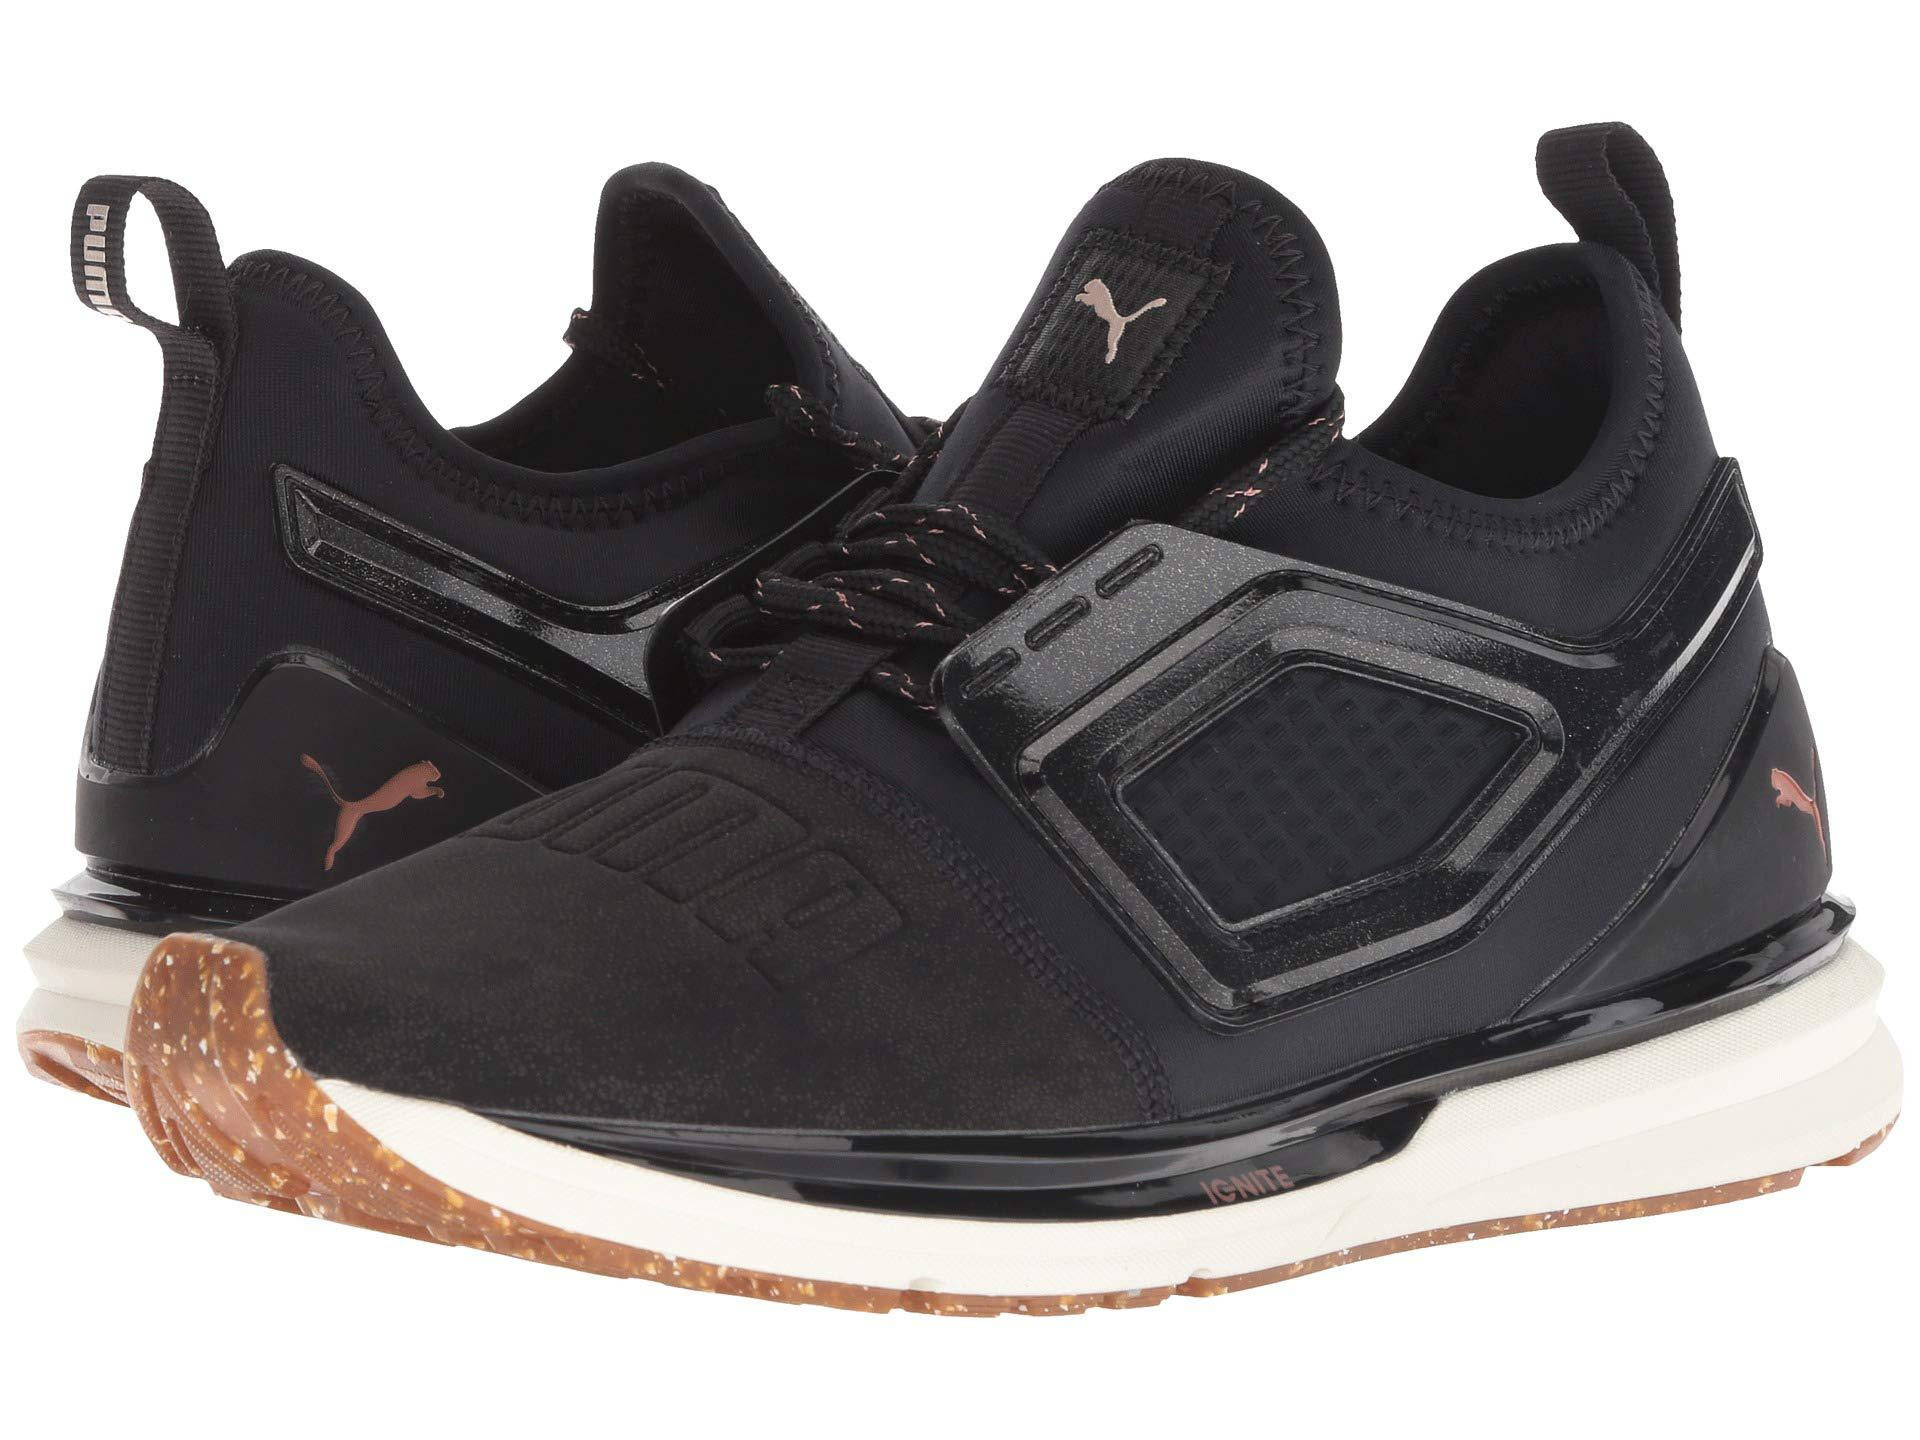 fc1586d0754 Lyst - PUMA Ignite Limitless 2 Crafted ( Black rose Gold) Women s ...